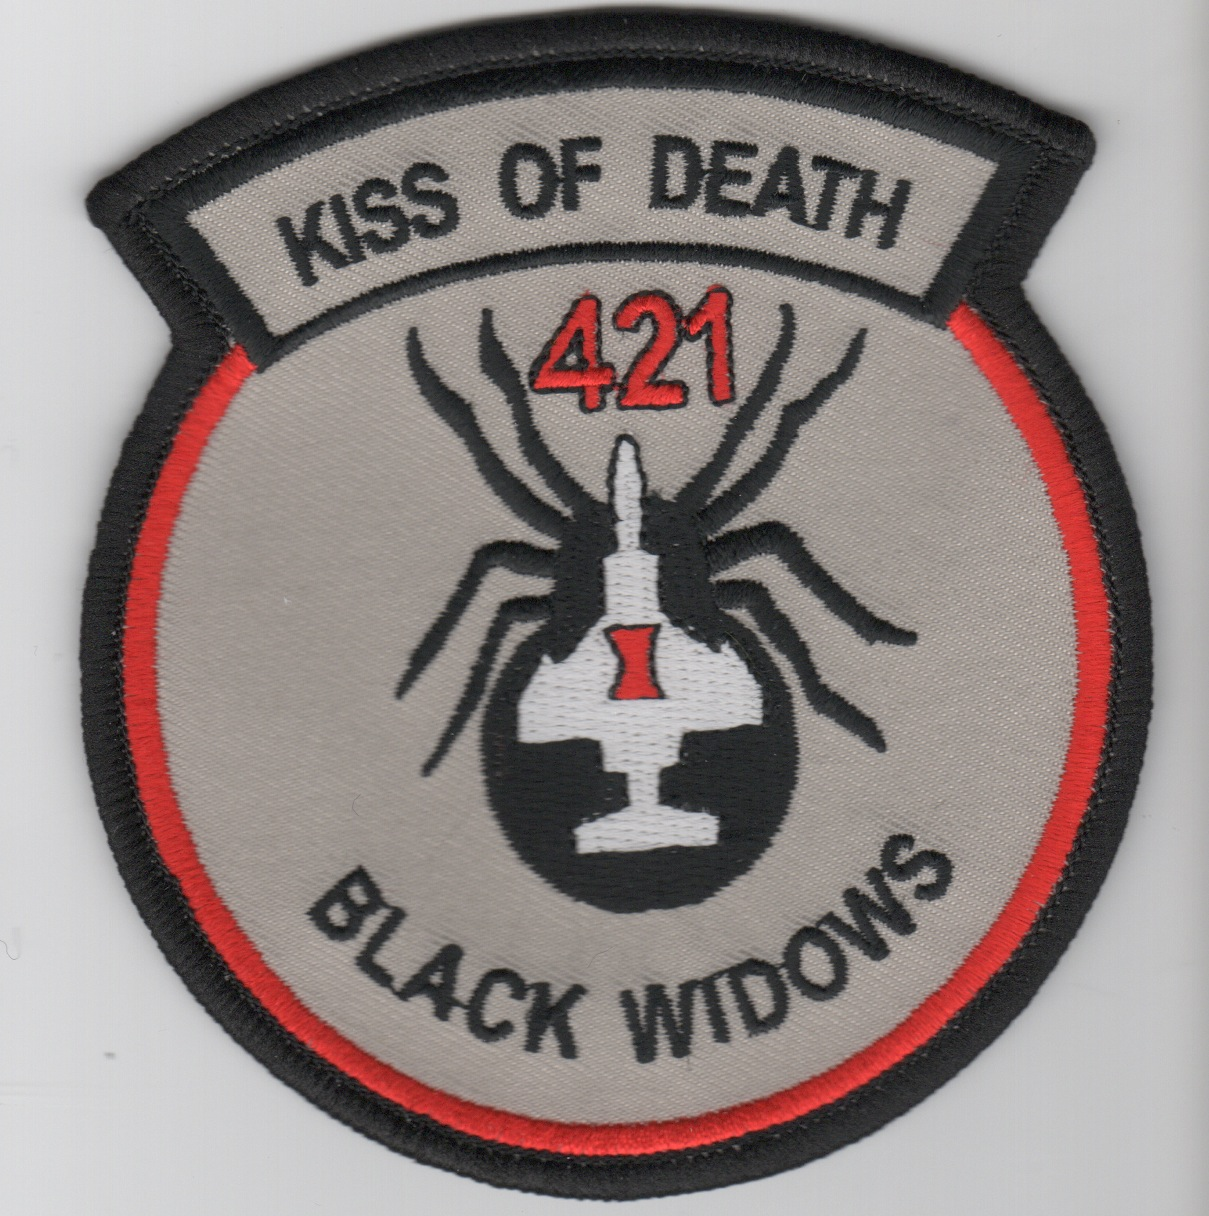 421TFS 'Kiss of Death' Patch